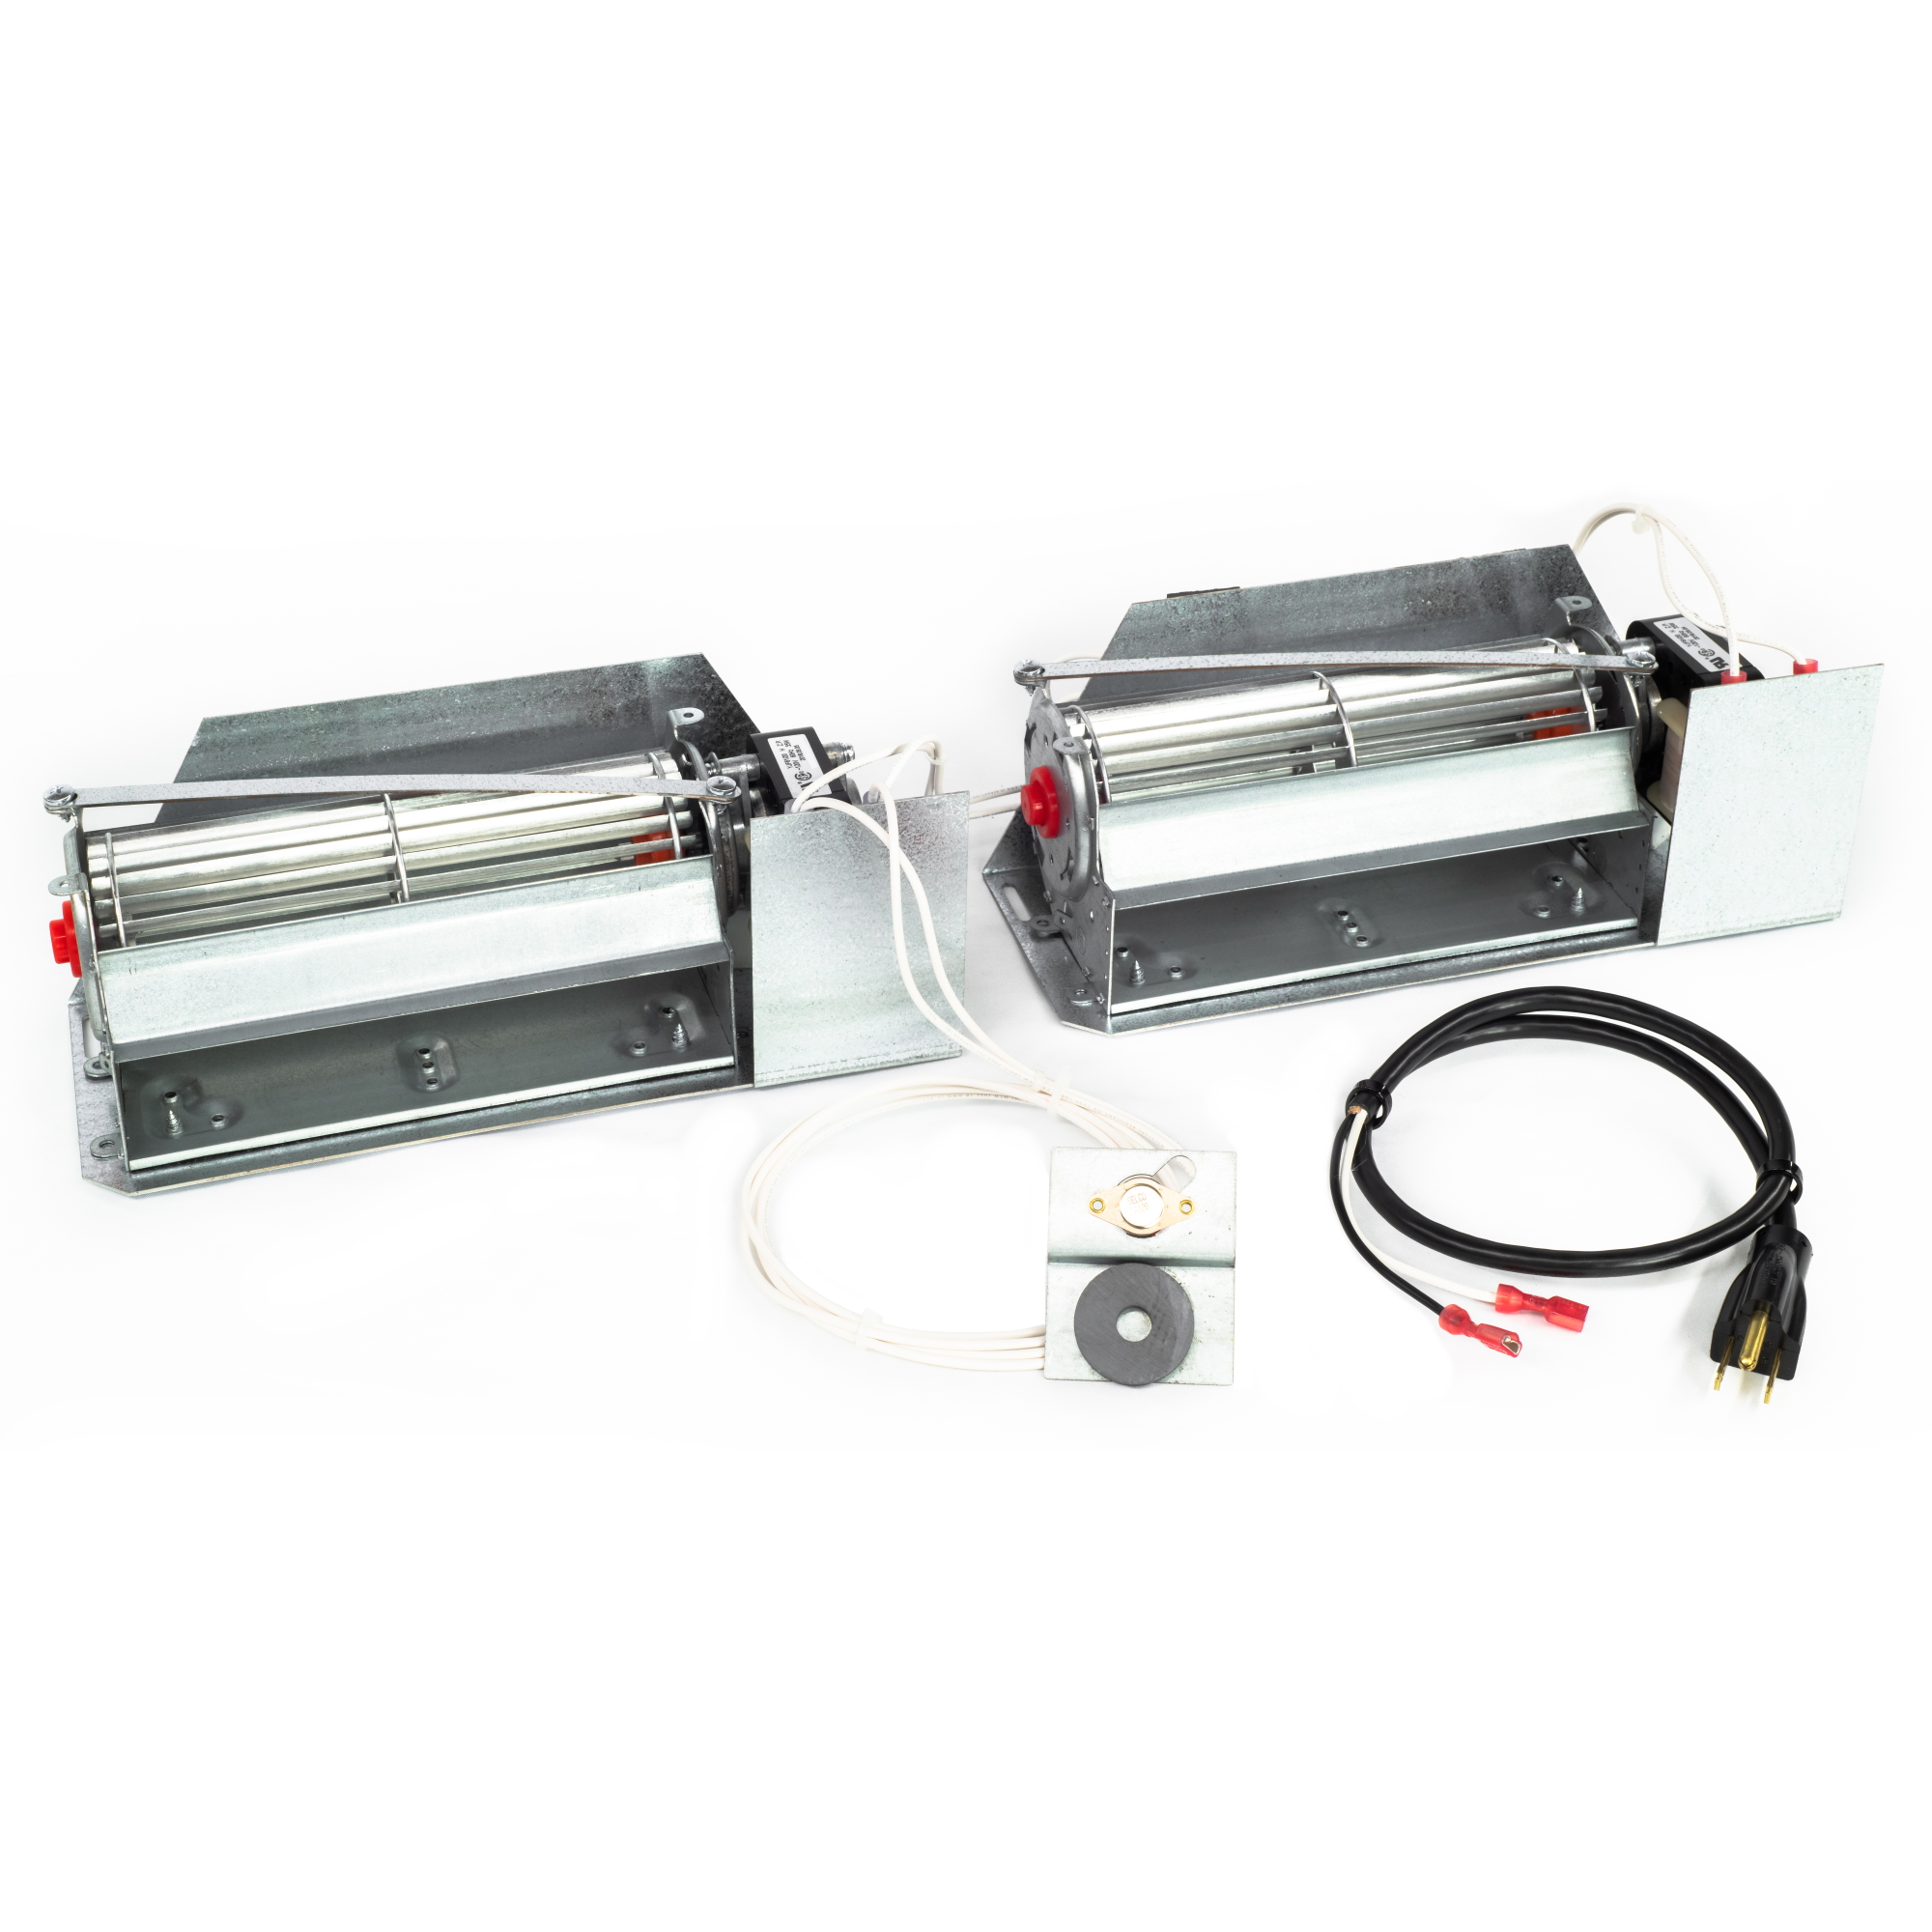 UZY5 Fireplace Blower Kit for BIS, Lennox, Security and Superior Wood Fireplaces